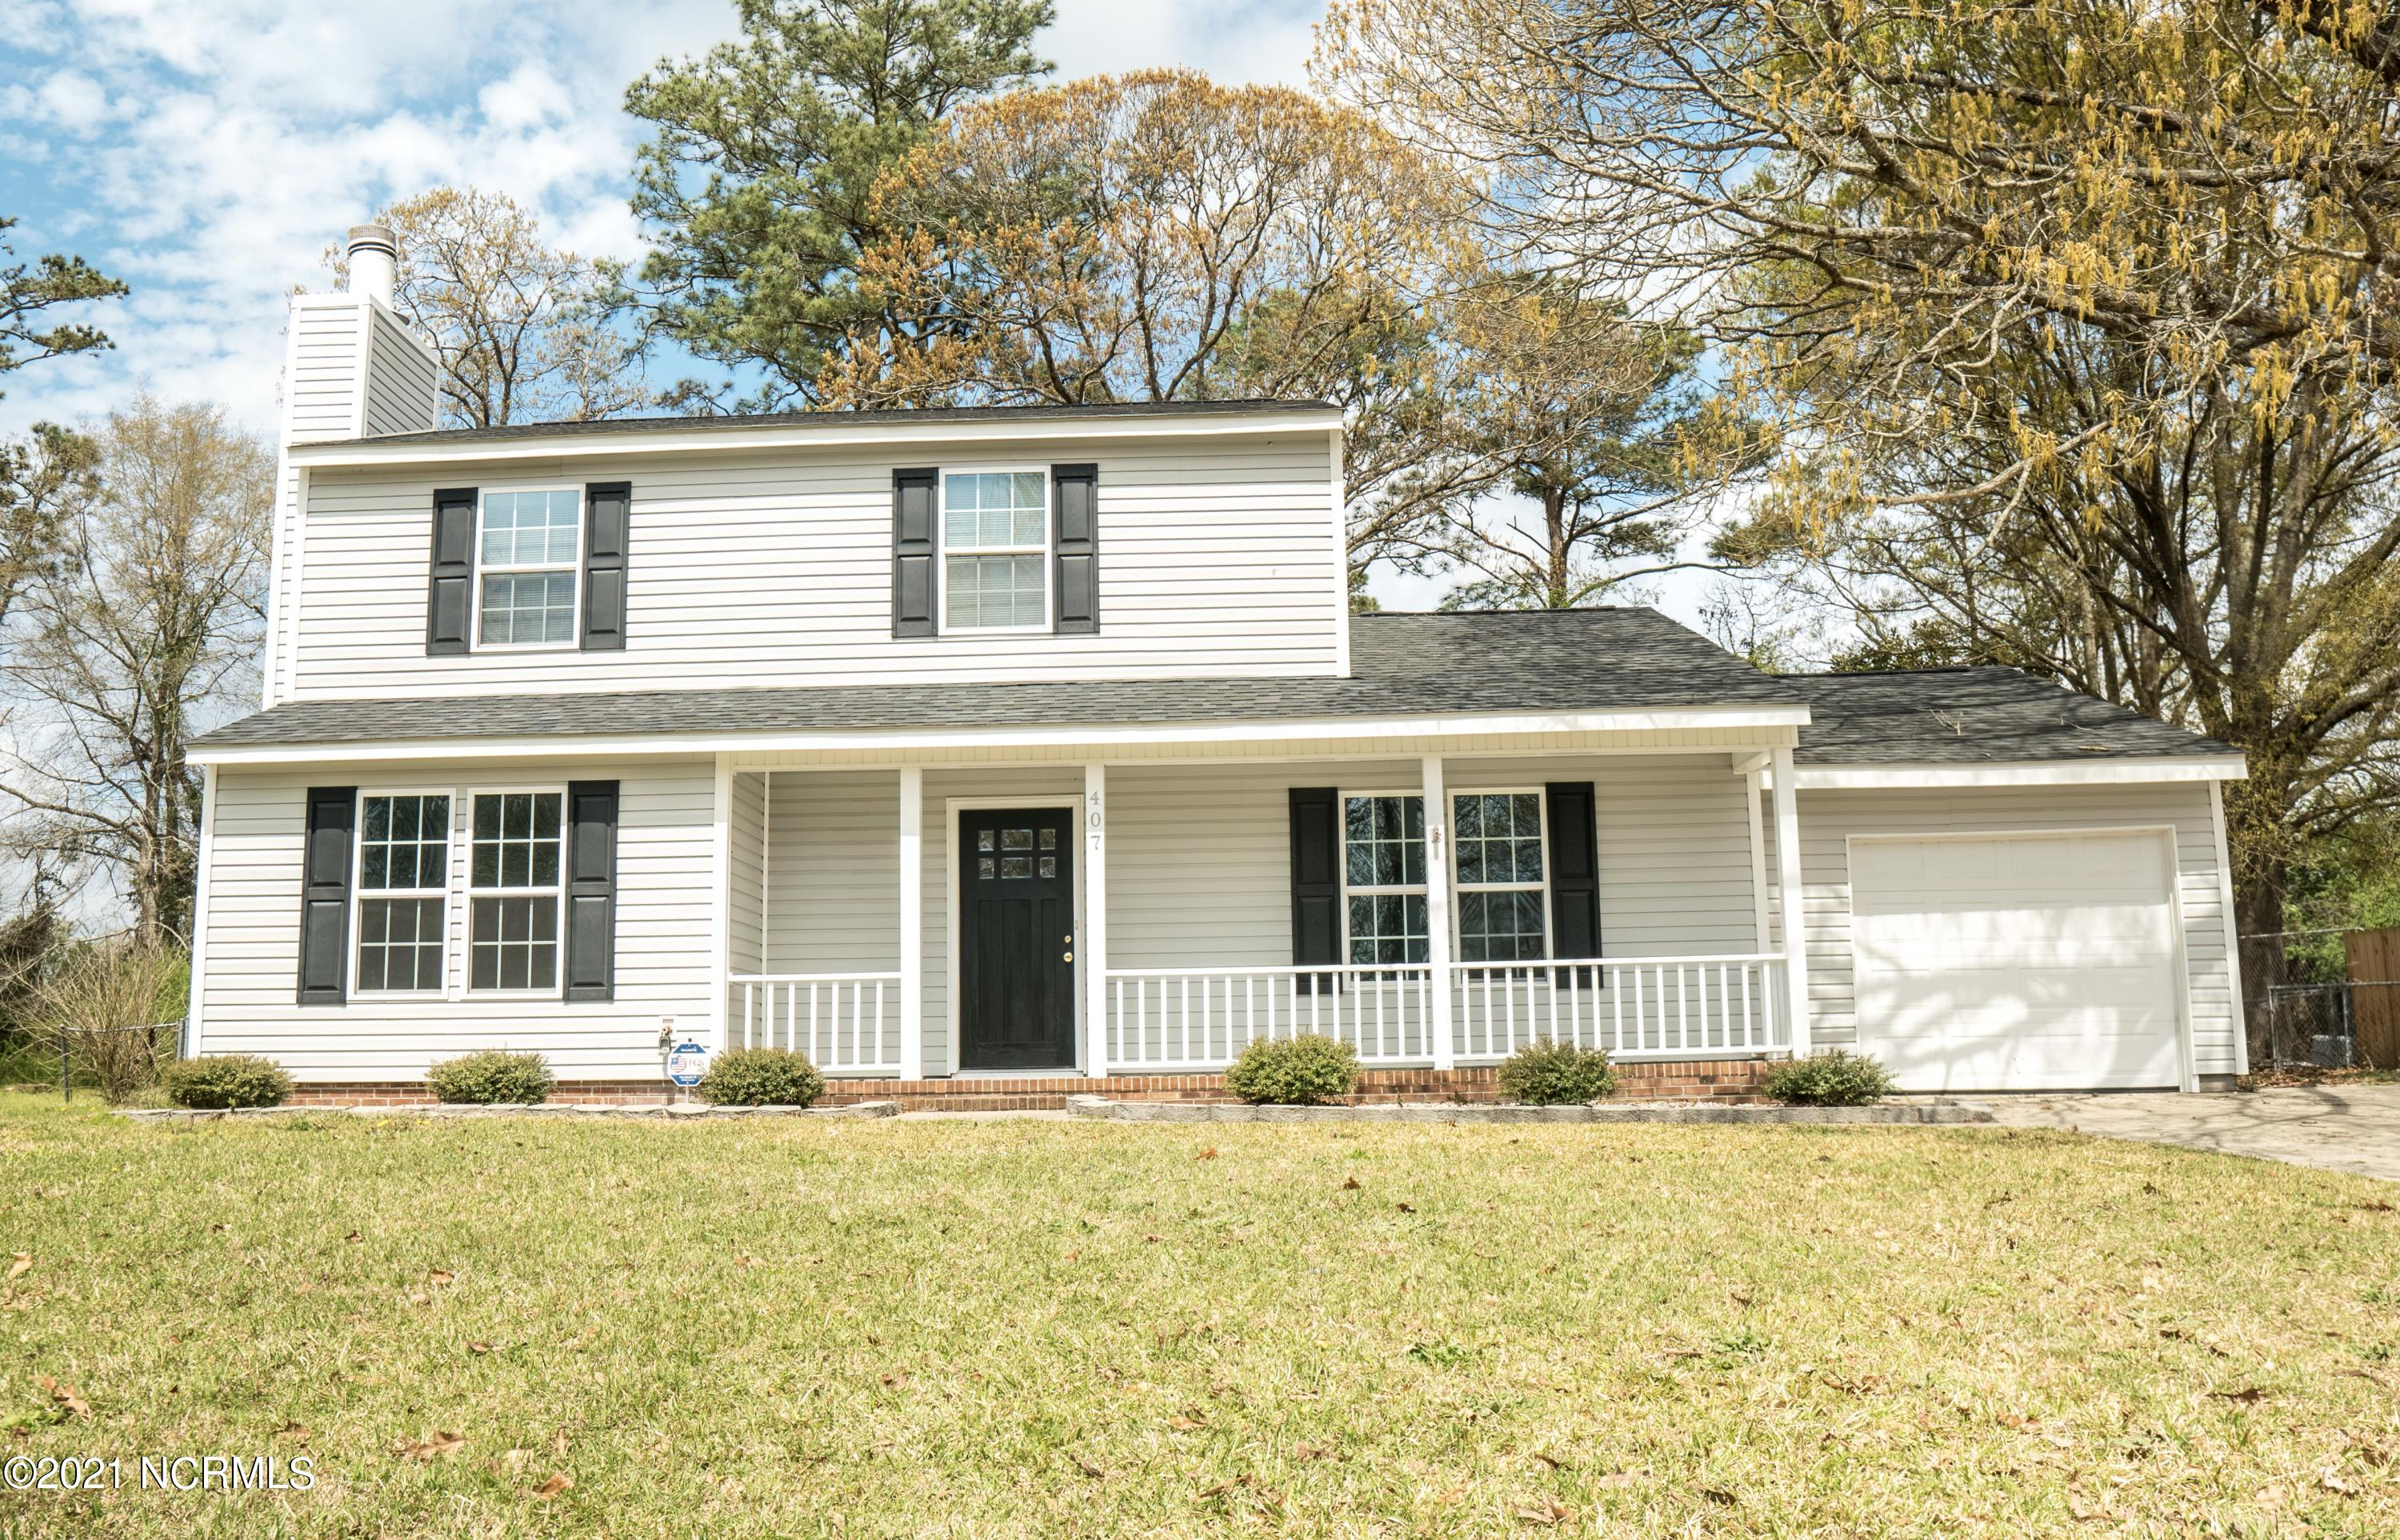 Welcome to your new home! Conveniently located in Montclair off of Piney Green Road close to Camp Lejeune, beaches, and shopping. This beautifully remodeled home has a brand new HVAC, new cabinets and countertops, and stainless steel appliances. Featuring a bonus bedroom downstairs perfect for house guests to have privacy, a den with a brick fireplace, and an oversized sunroom great for entertaining! NO city taxes and no HOA. Schedule your tour before this home is gone!